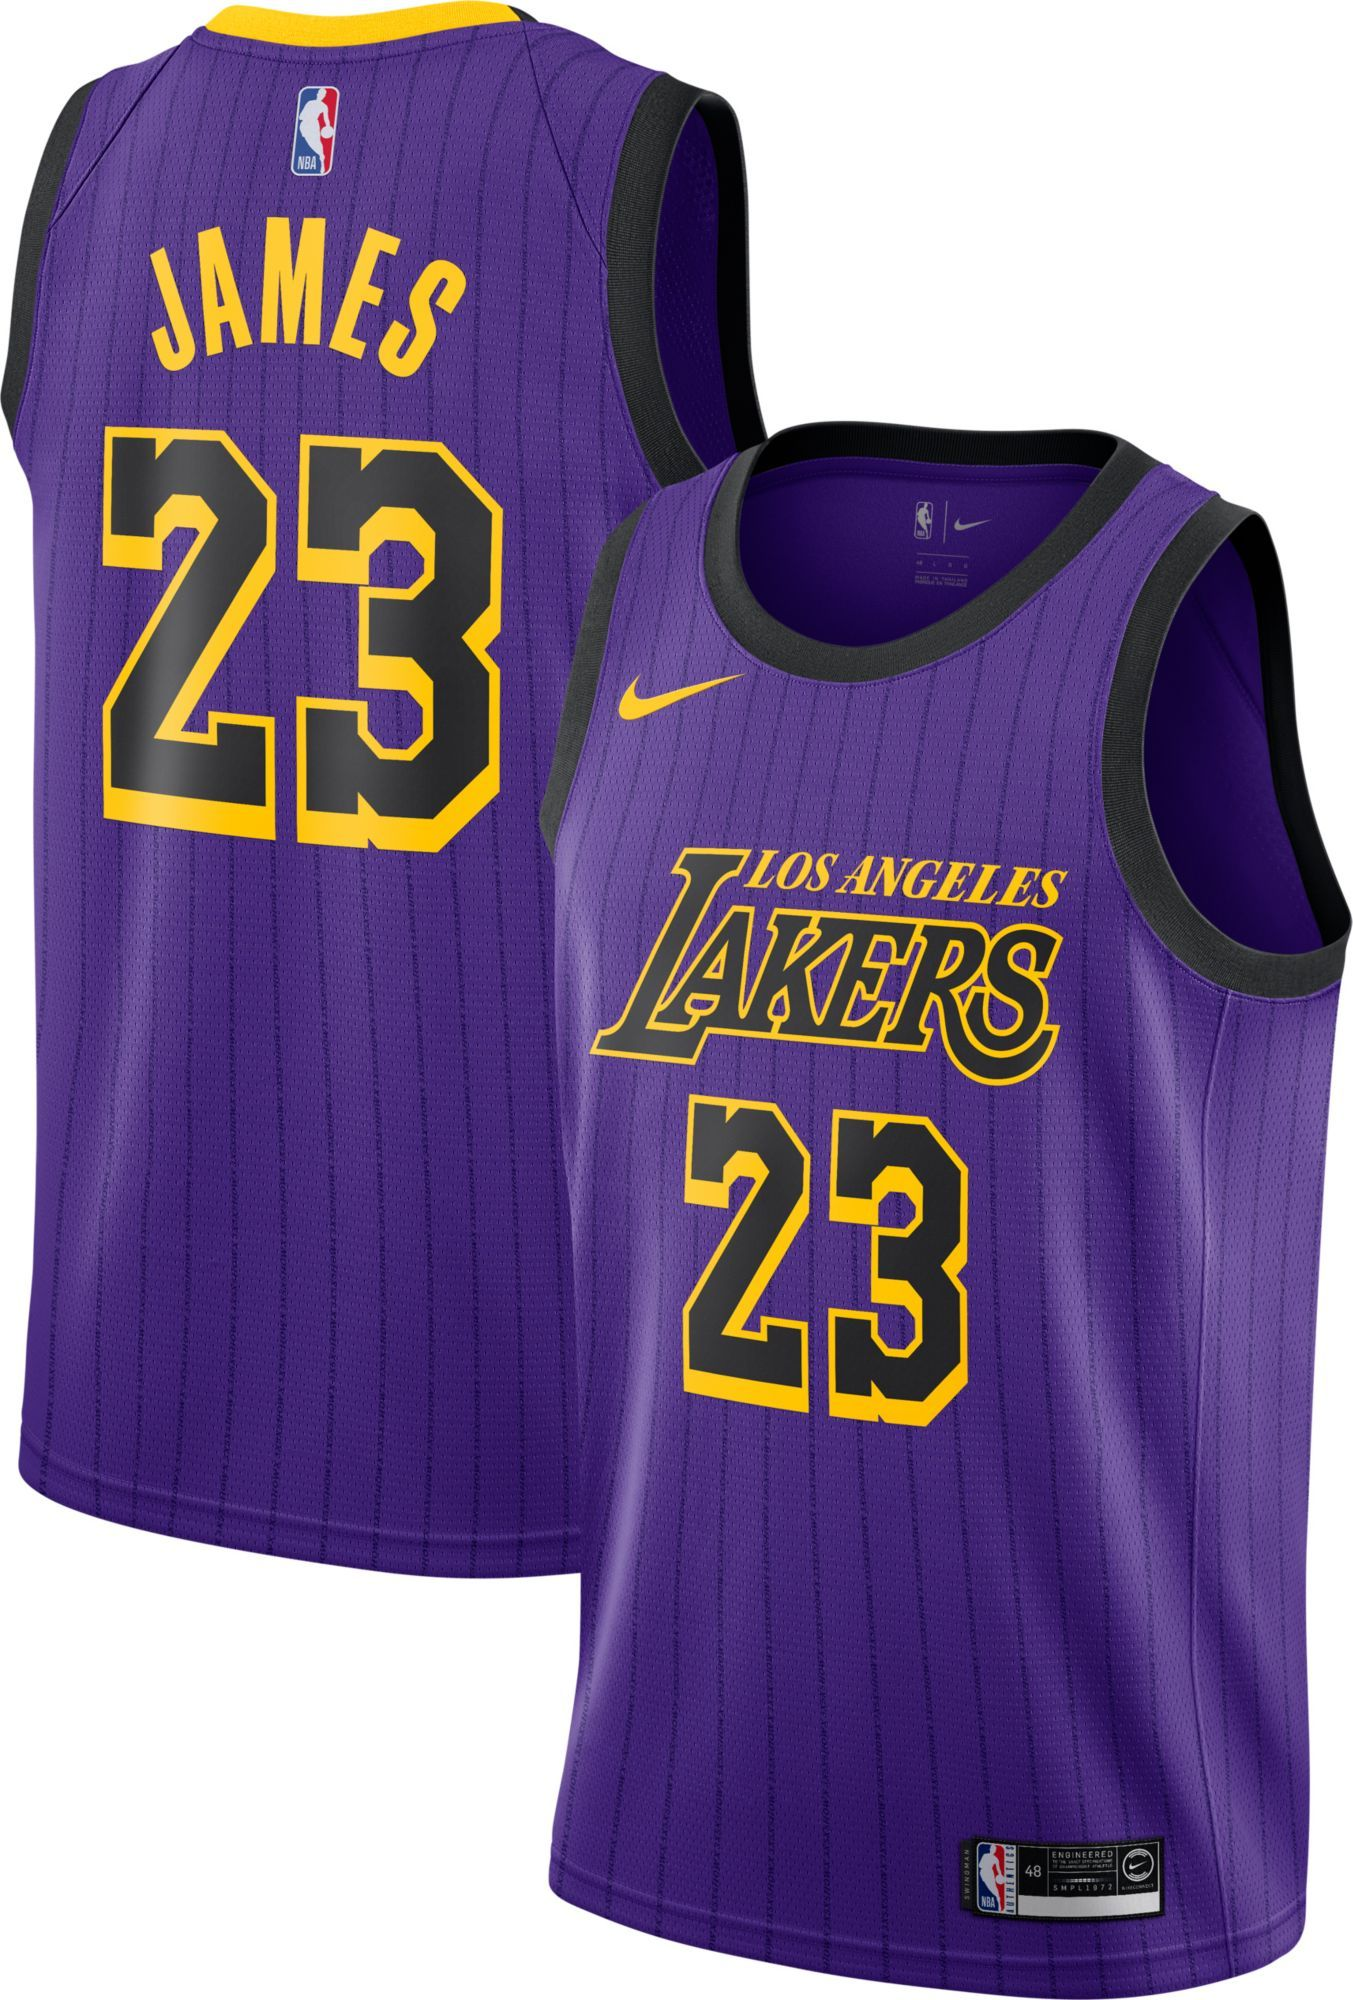 buy popular f94c4 9540d Nike Men's Los Angeles Lakers LeBron James Dri-FIT City ...